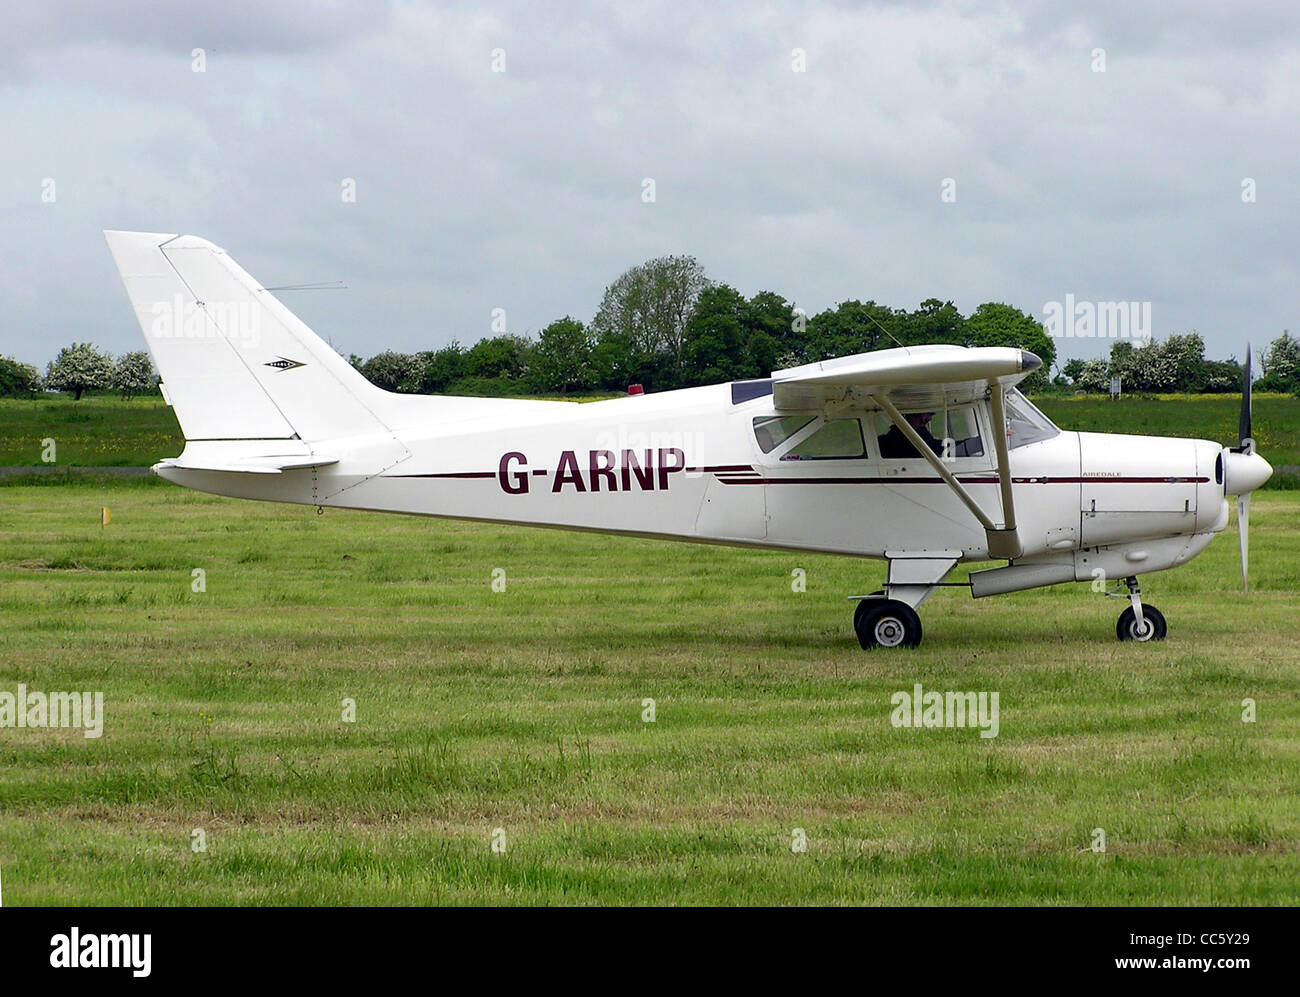 Beagle A.109 Airedale, UK registration G-ARNP, at Keevil Airfield, Wiltshire, England. - Stock Image